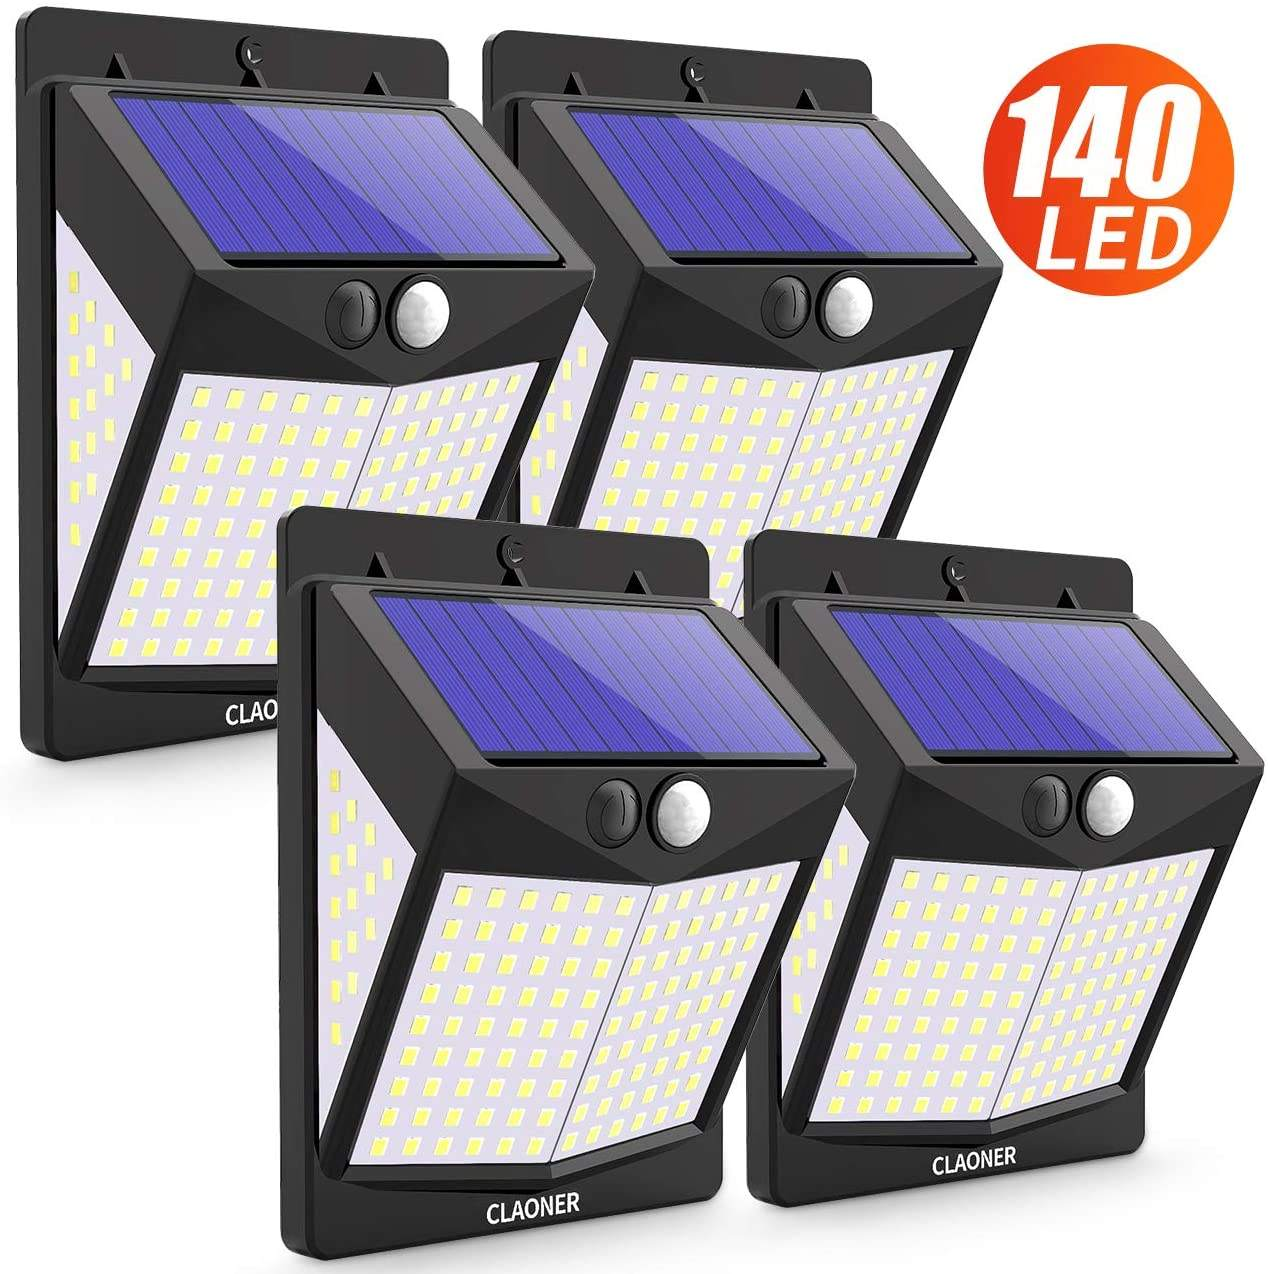 140 LED IP65 Waterproof Security Solar Wall Lights , 3 Modes Wireless Solar Lights Outdoor